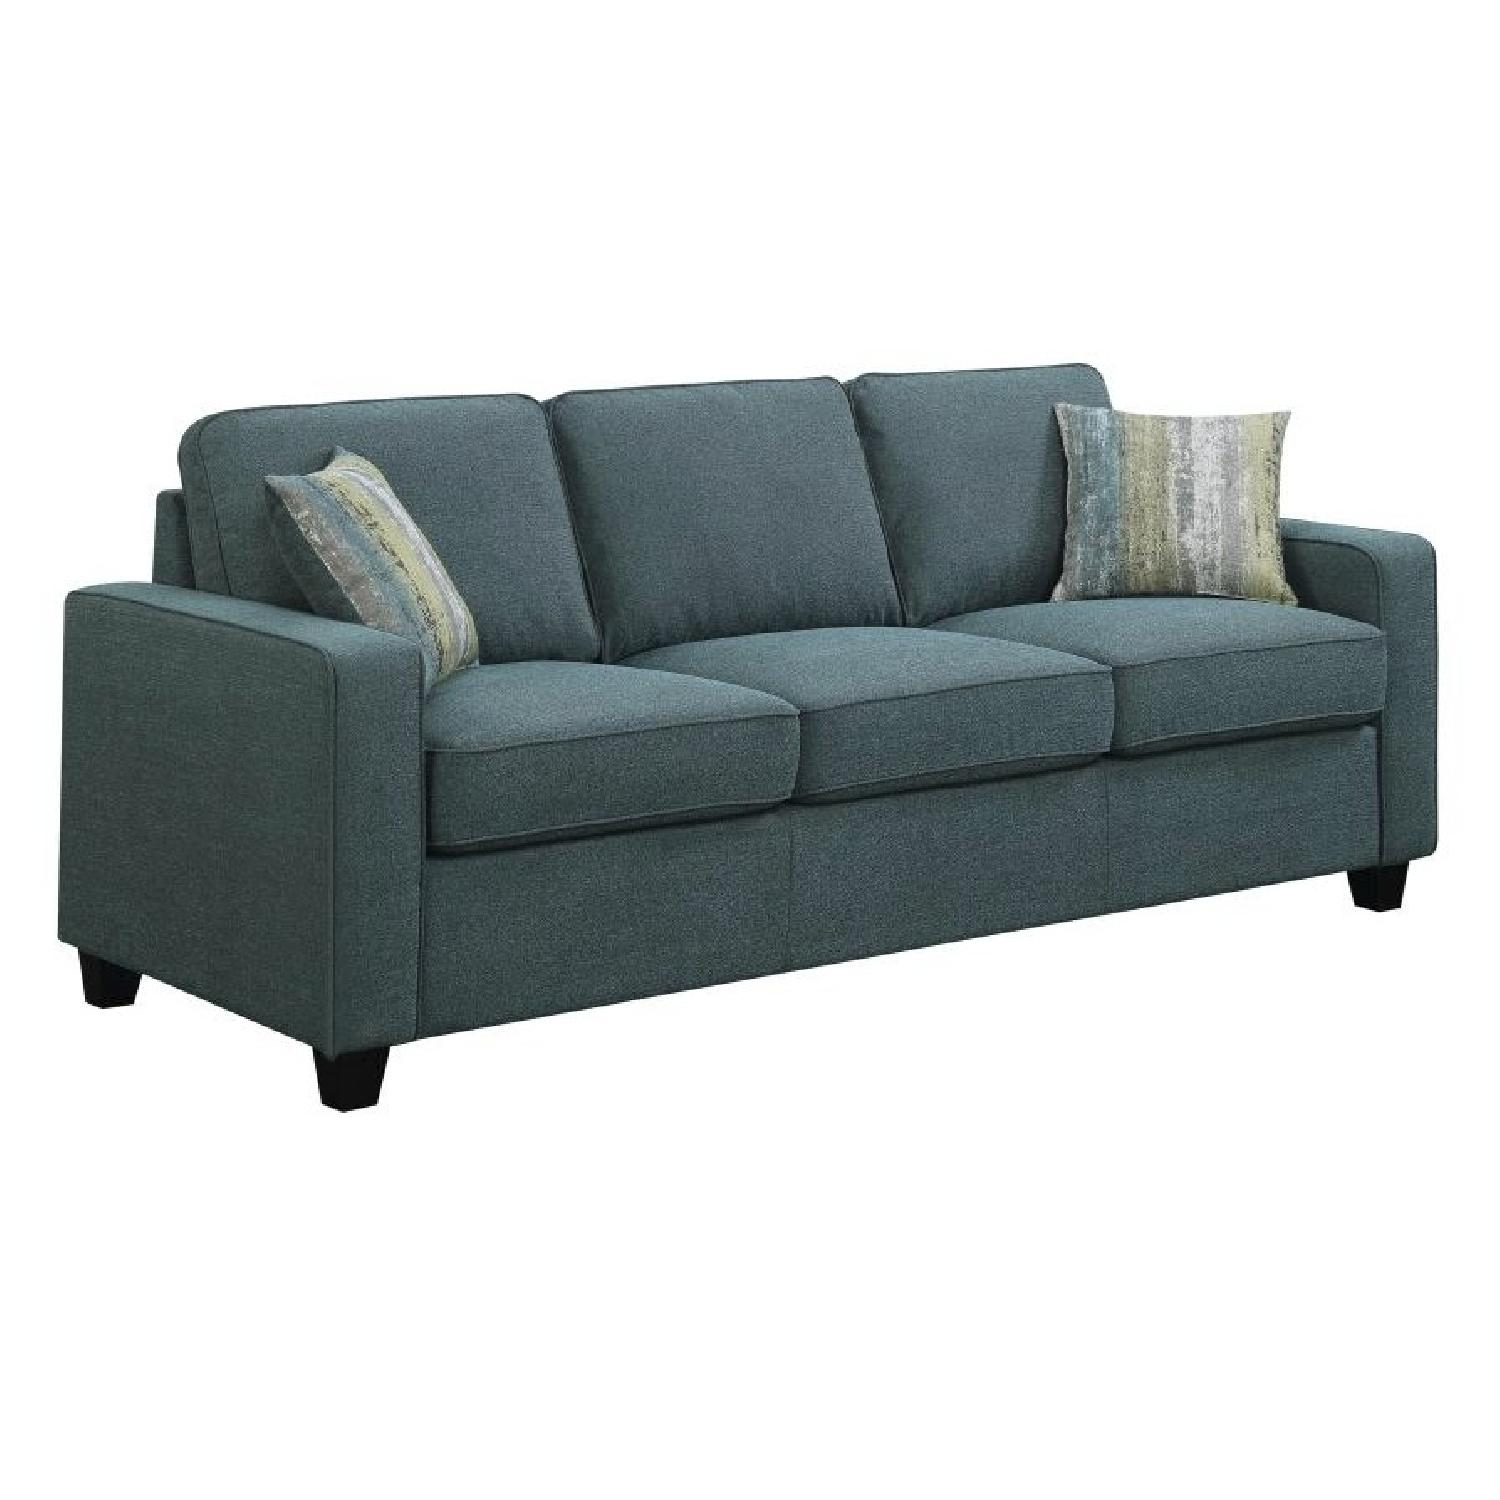 Track Arm Sofa in Blue Linen-Like Fabric